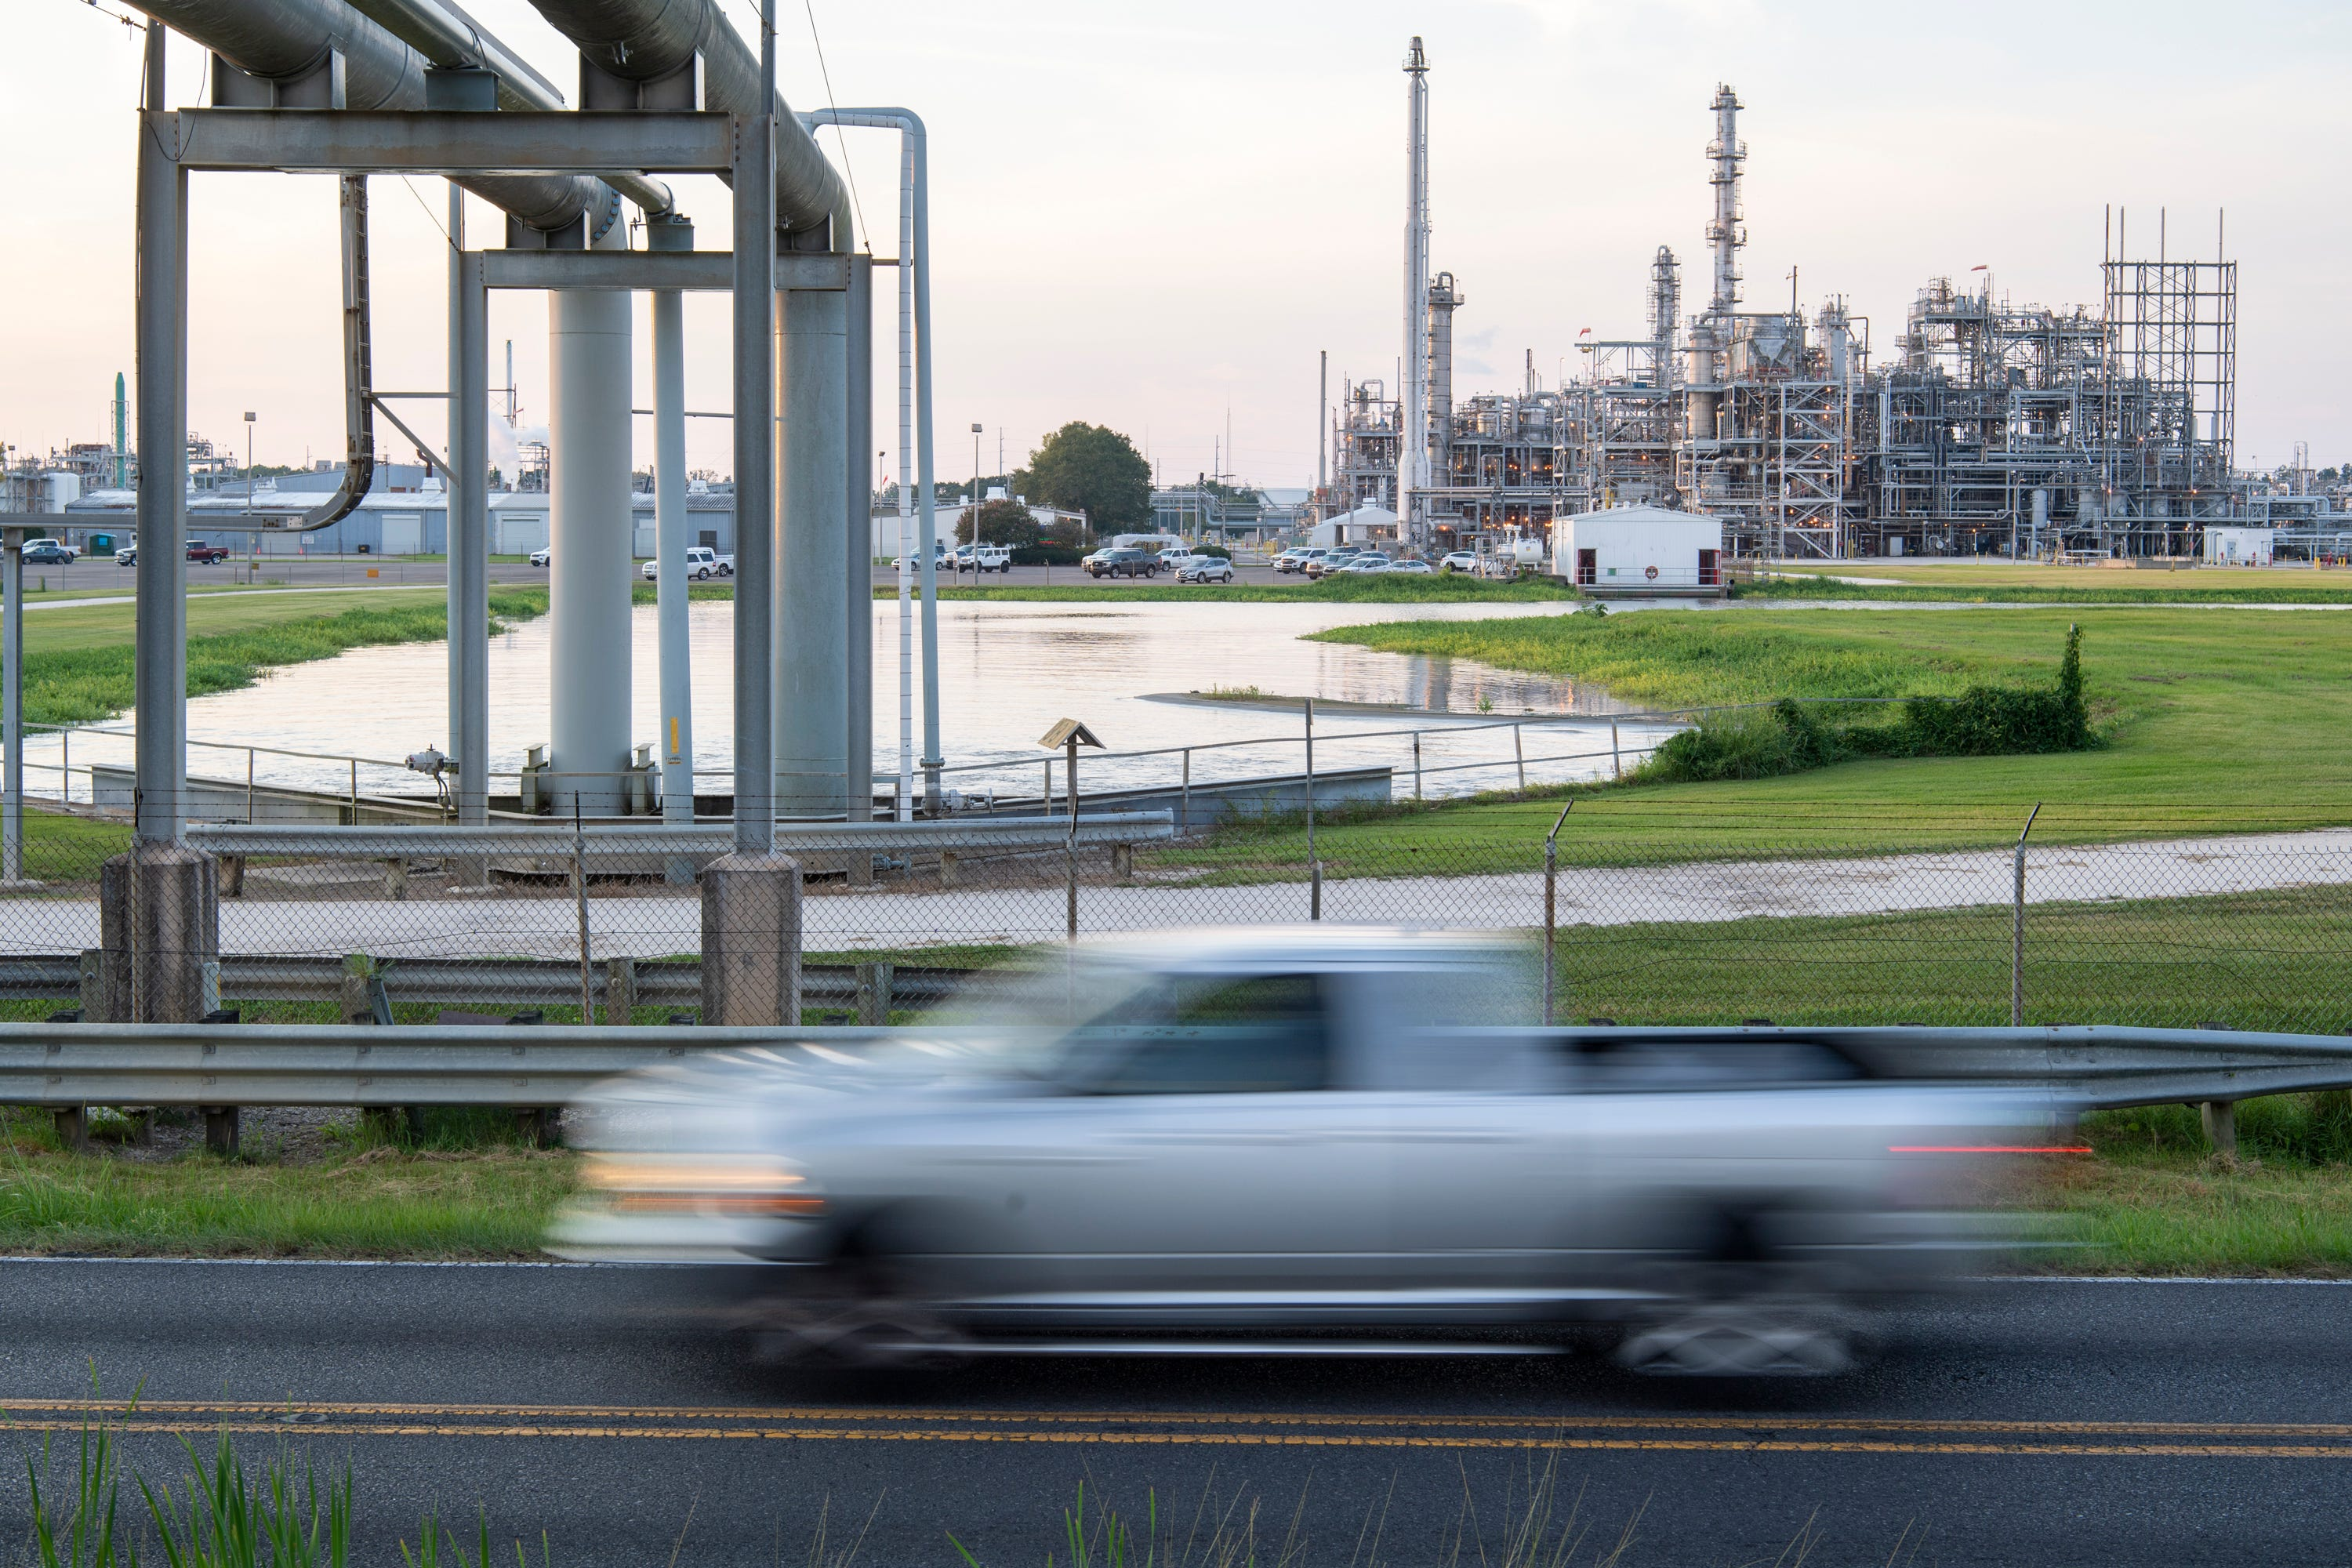 The EPA classified chloroprene as a likely carcinogen in 2010 and has been closely monitoring air quality near the Denka Performance Elastomer neoprene plant since 2016.